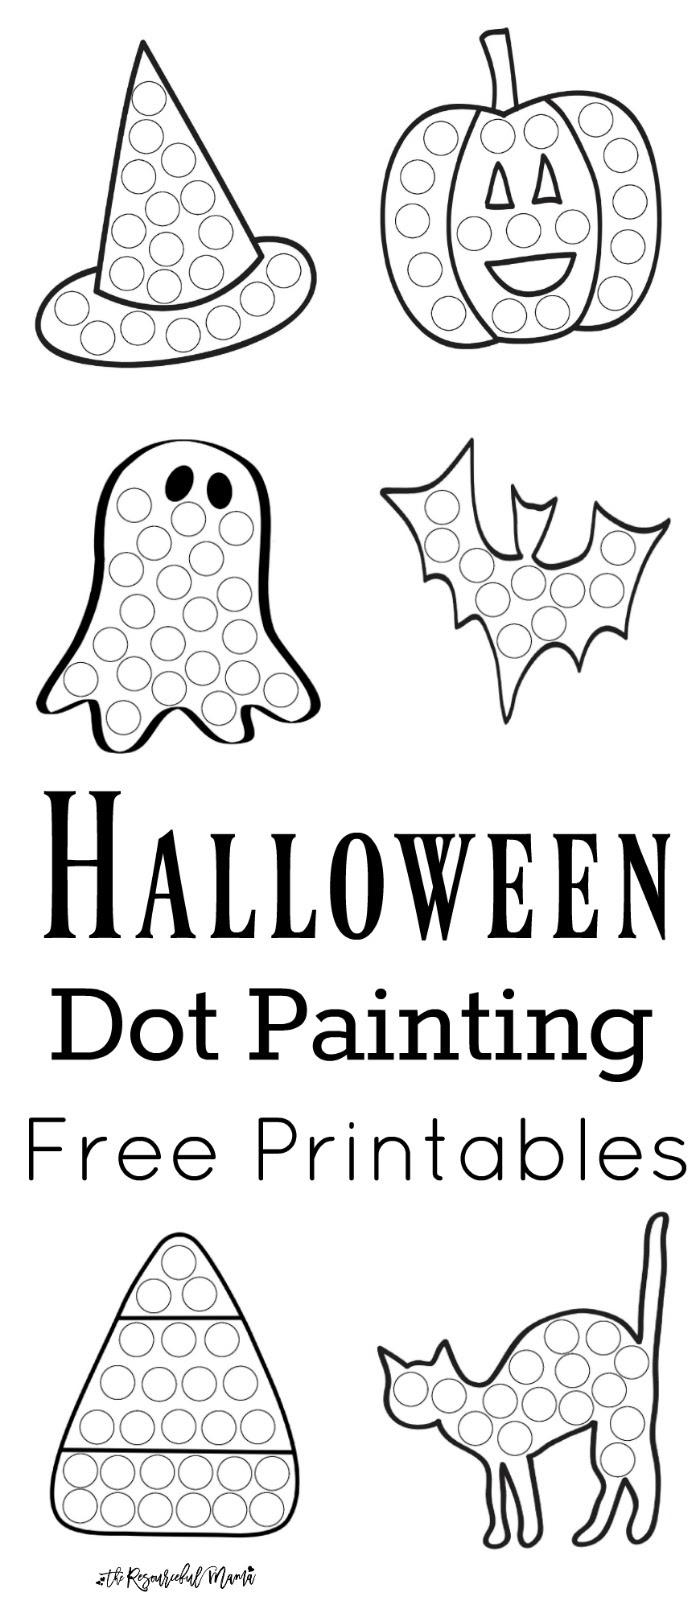 Halloween Dot Painting Free Printables The Resourceful